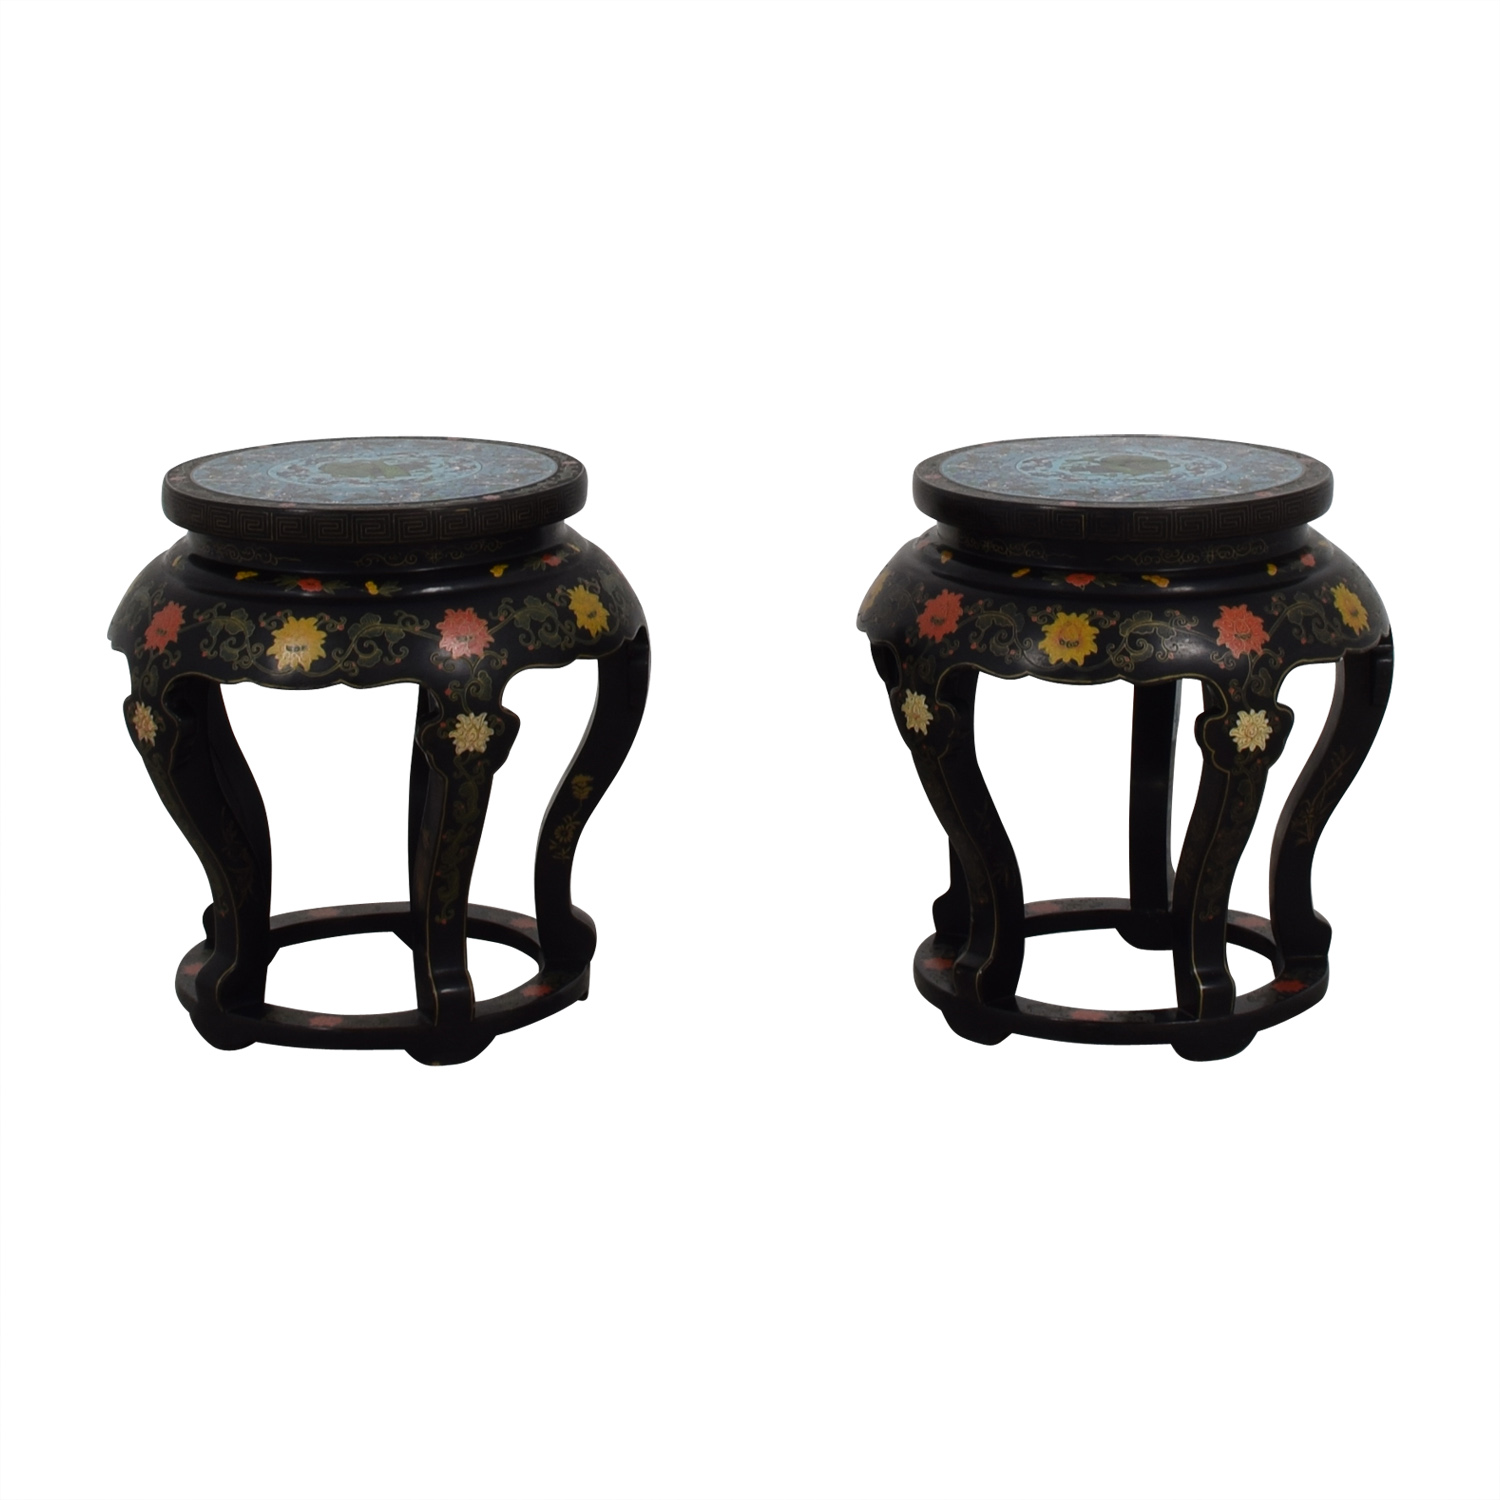 buy Antique Chinese Round Tables with Cloisonne Top End Tables